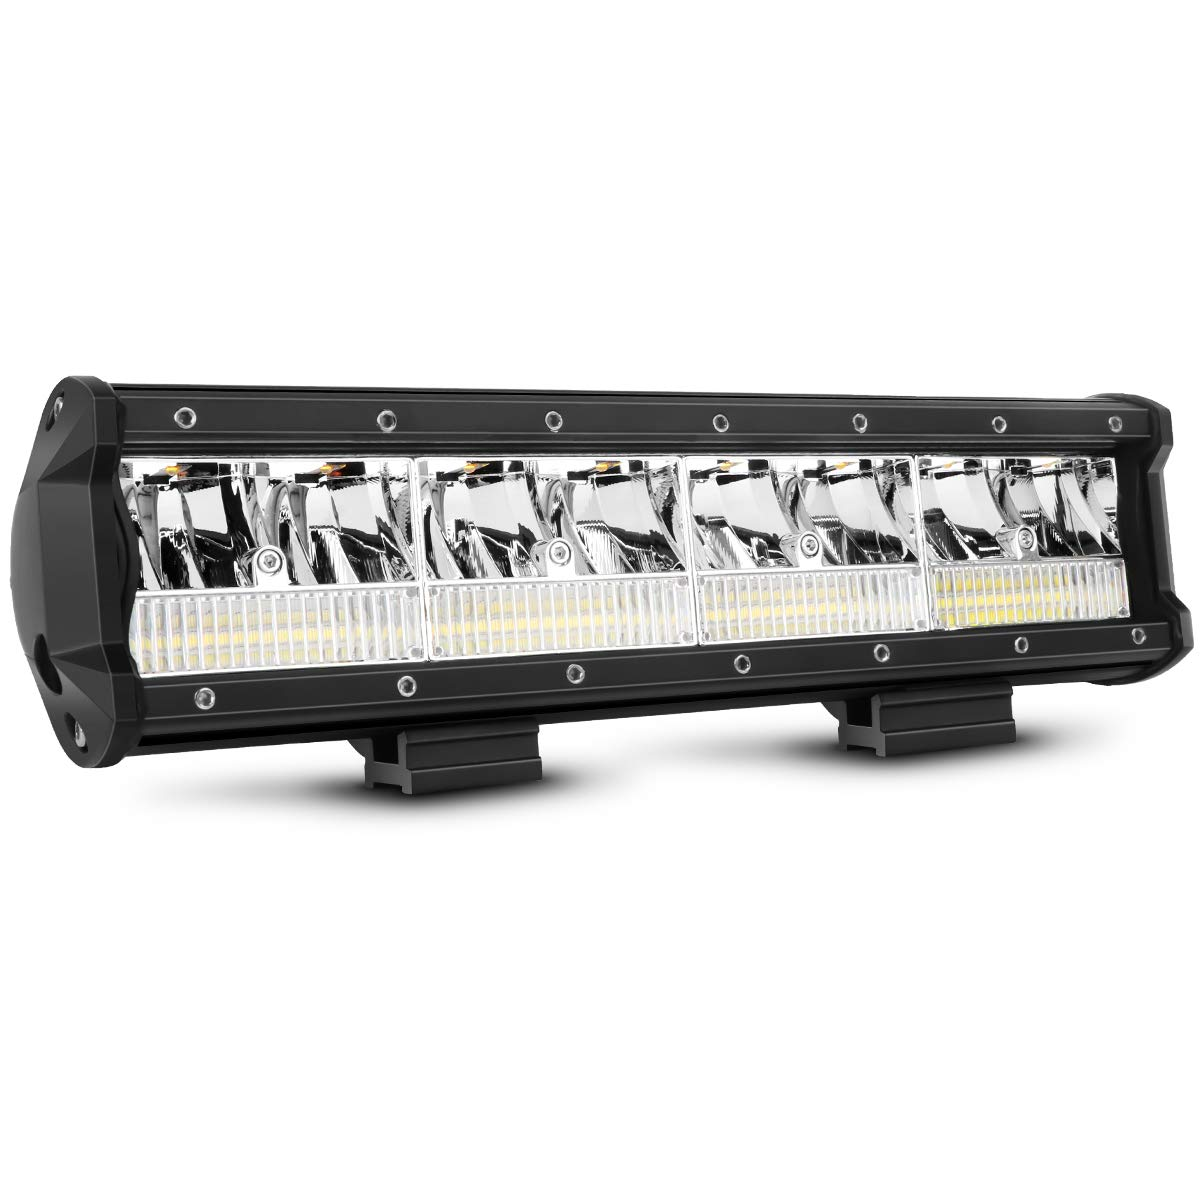 HOZILIFE 12 Inch LED Light Bar 240W Flood Spot Combo Beam Offroad Driving Lamps for Trucks Jeep ATV Boat, Upgraded.